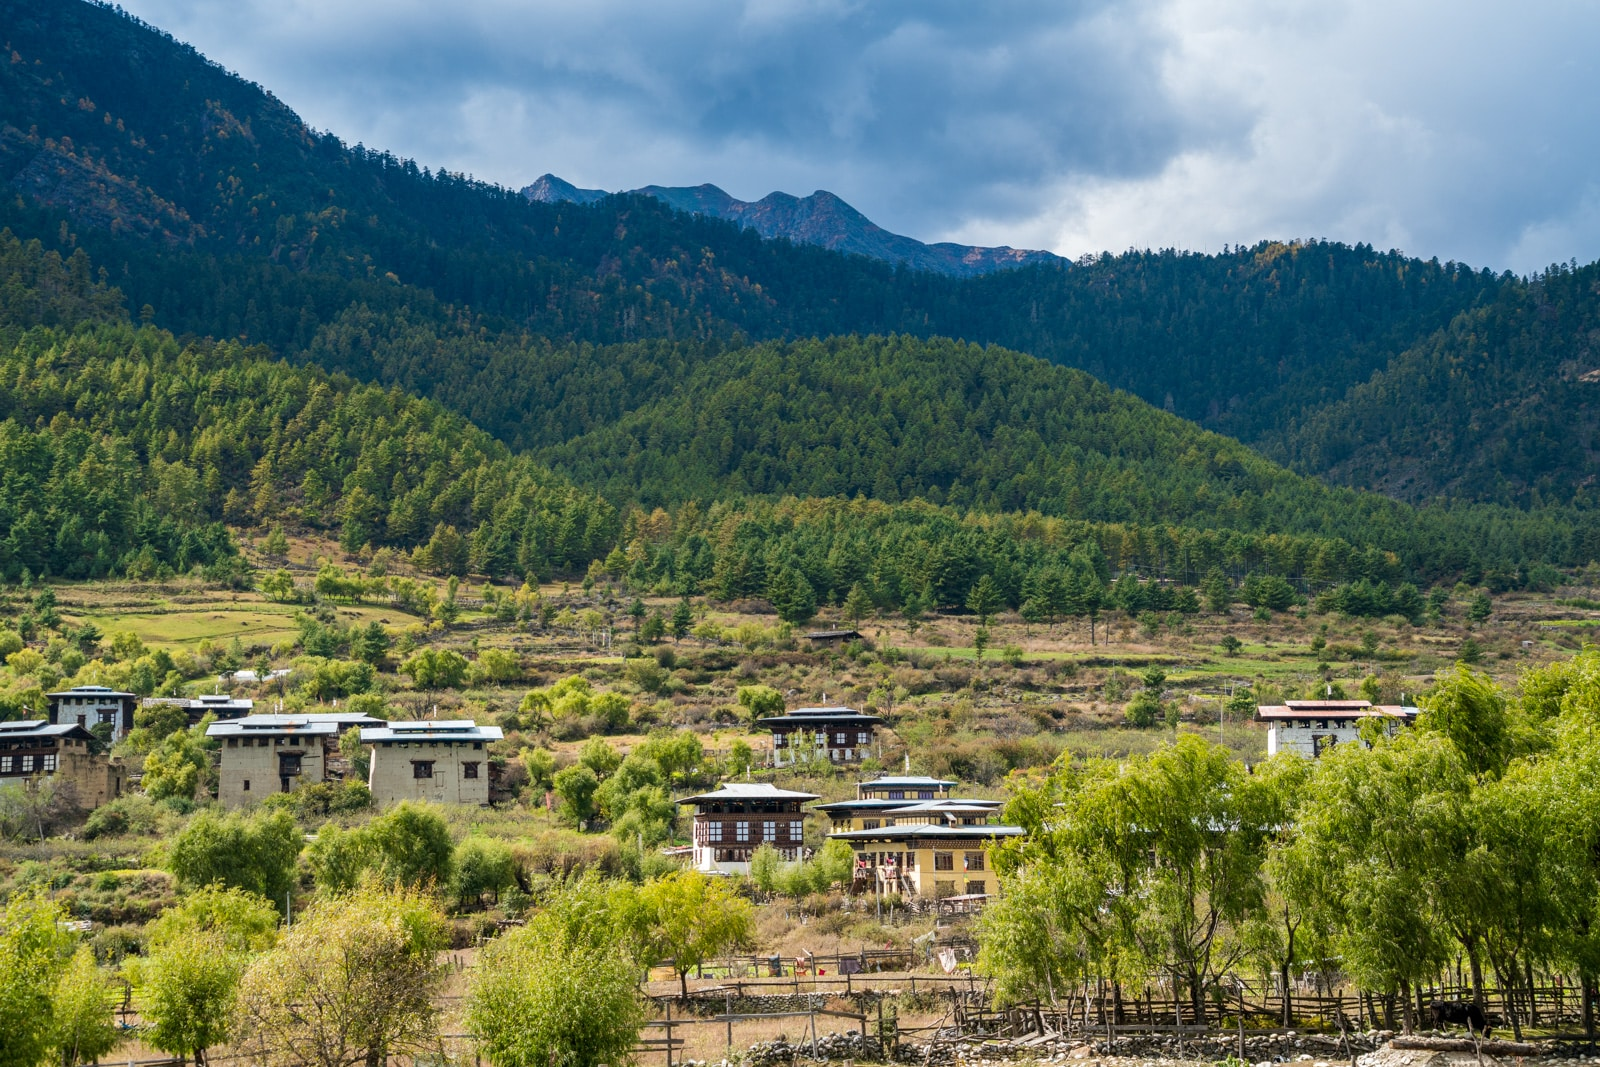 Off the beaten track Bhutan - Haa Valley houses - Lost With Purpose travel blog